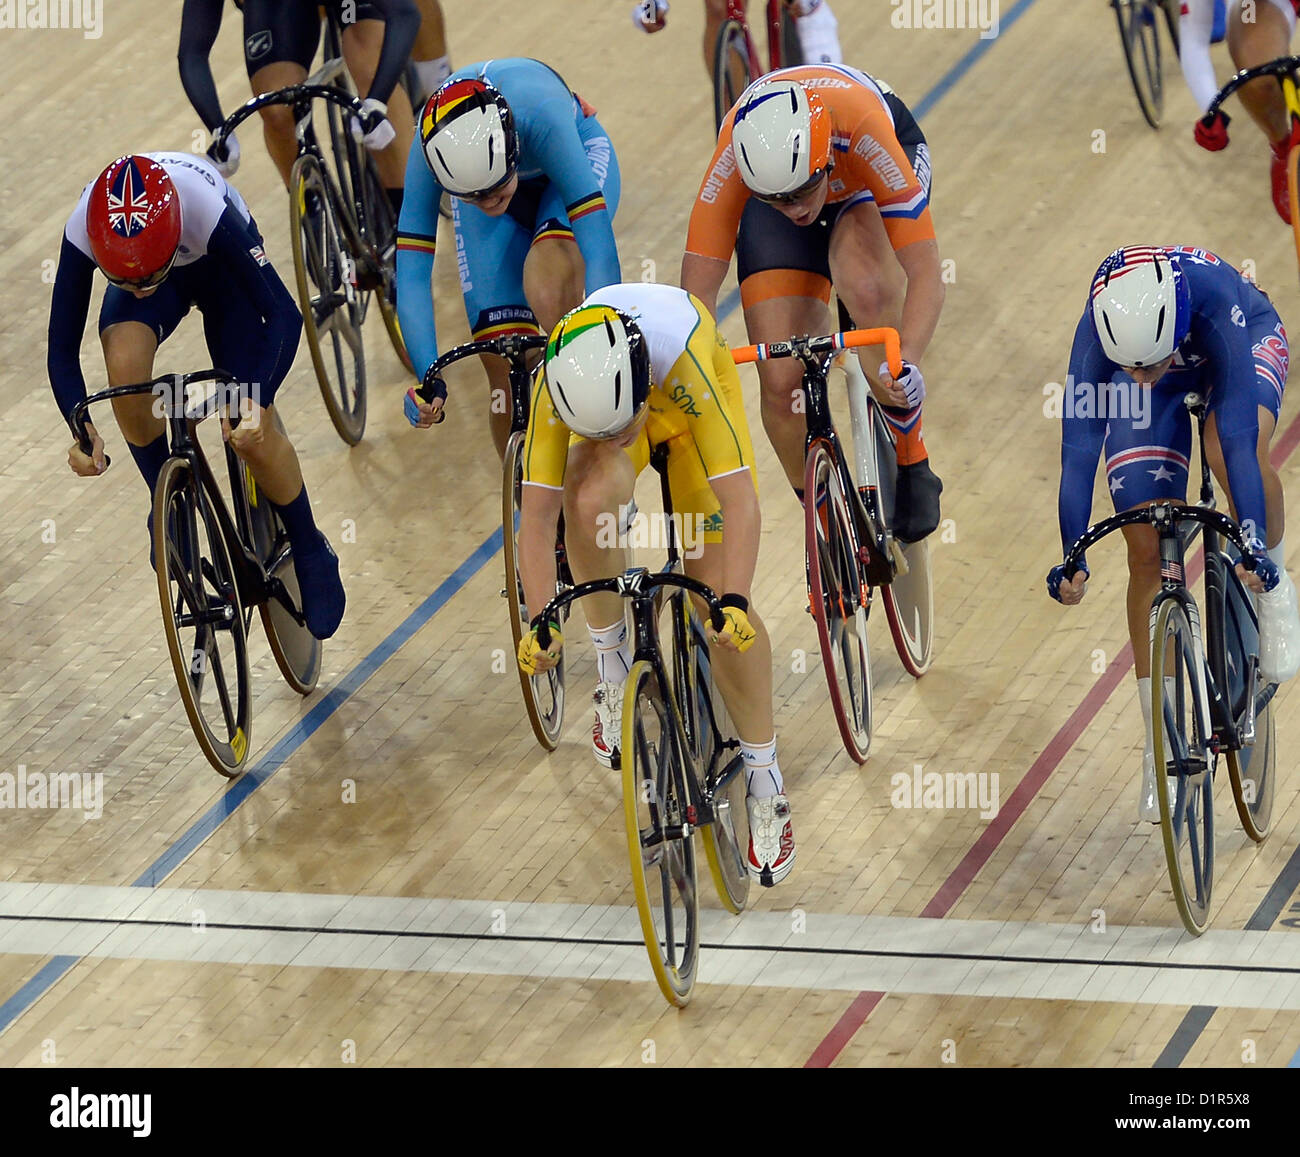 Annette Edmondson (AUS, Australia, centre) crosses The line first with Laura Trott (GBR, Great Britain, left) third - Stock Image